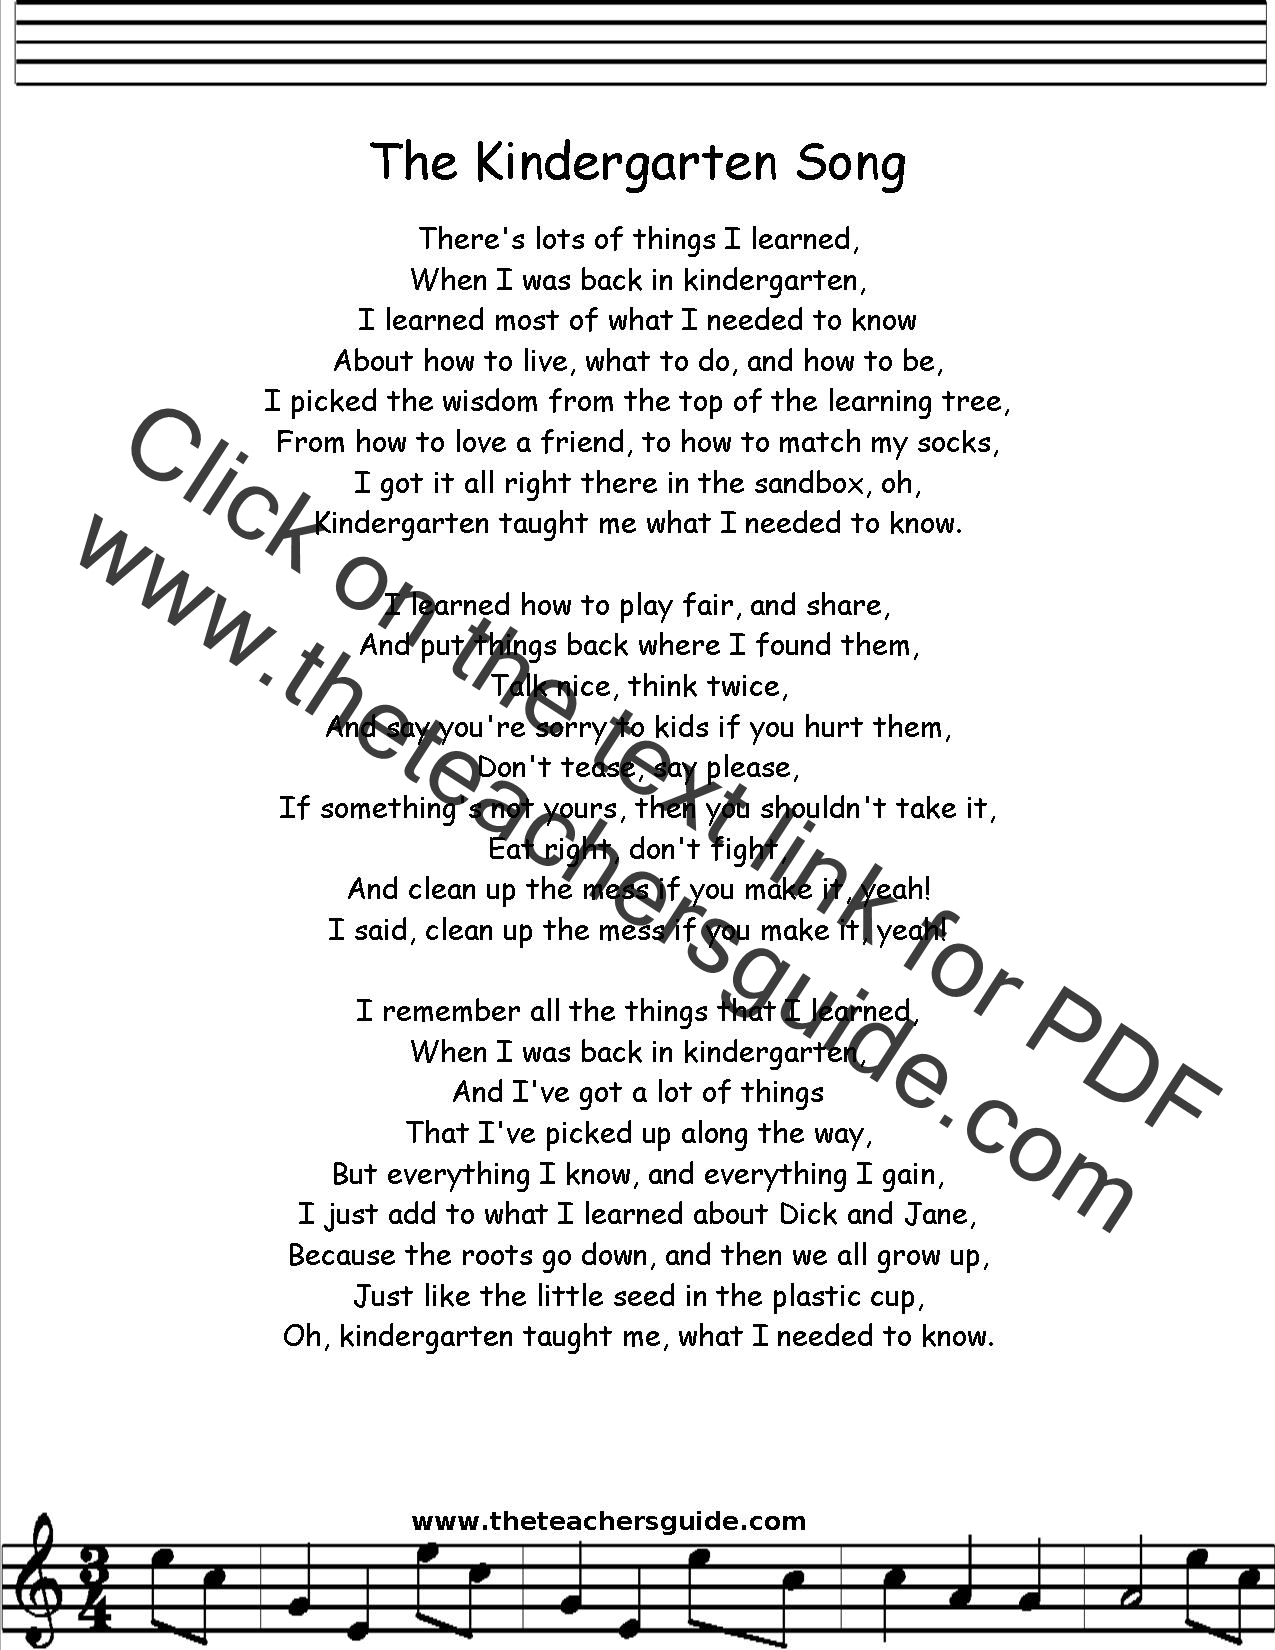 Kindergarten Song Lyrics Printout